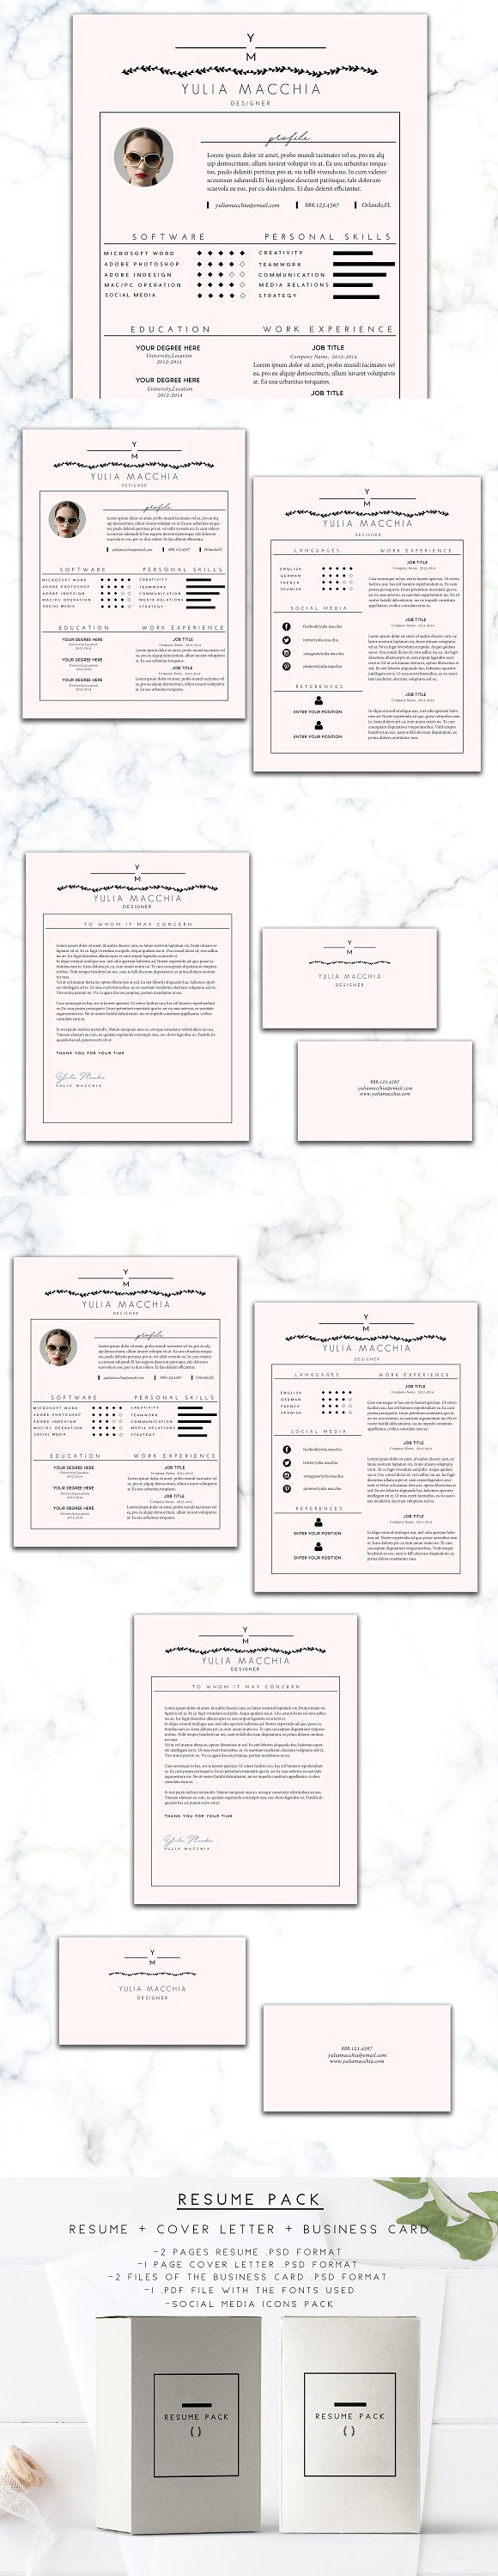 Resume Package. Creative Business Card Templates